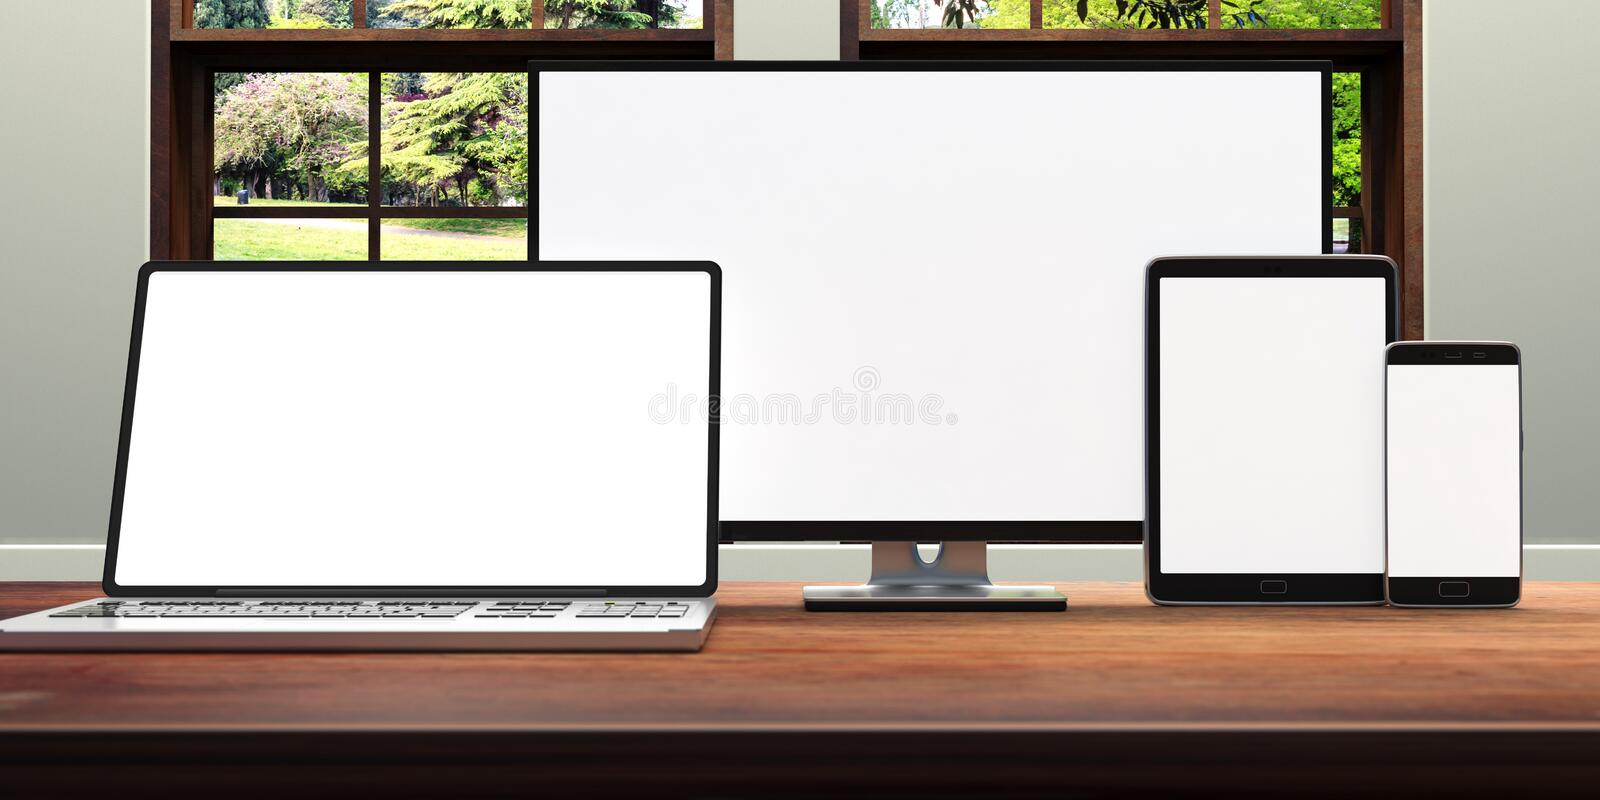 Set of realistic blank monitors. Computer monitor, laptop, tablet and smartphone on wooden desk, nature out of the window. 3d illu royalty free illustration